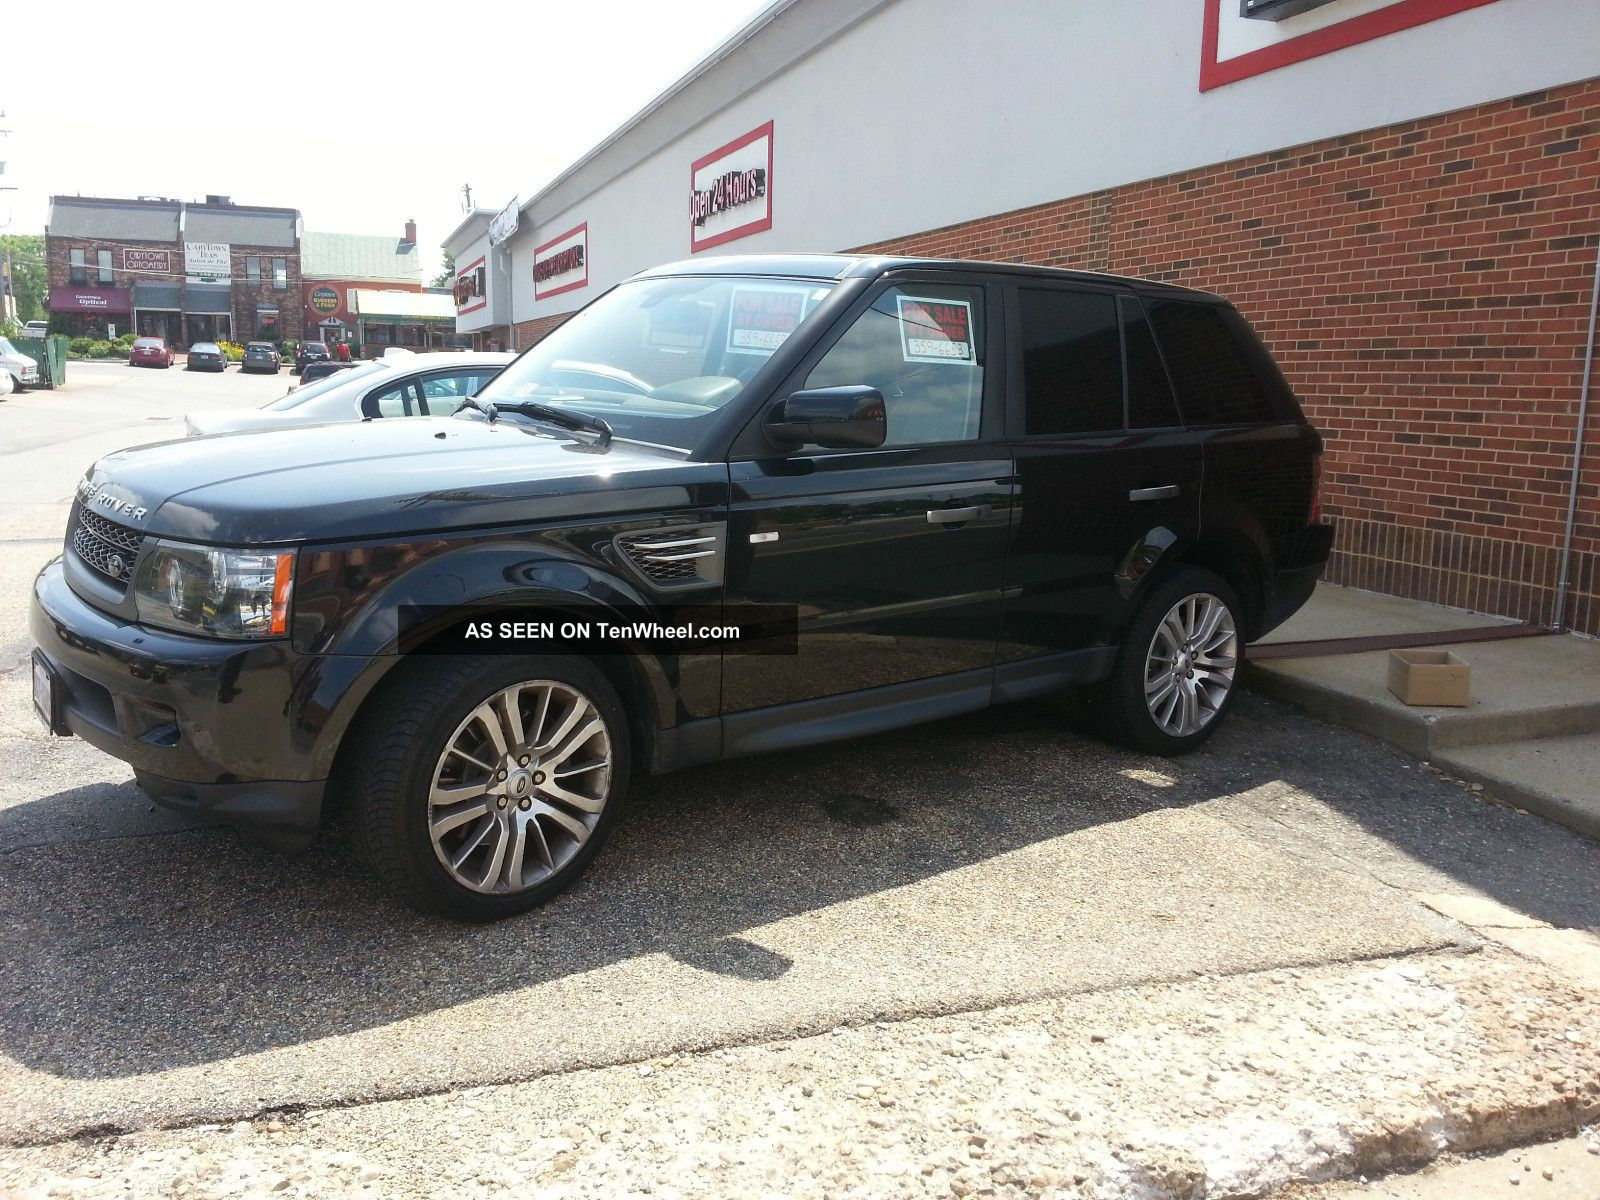 2010 Range Rover Sport Hse - Black W / Almond Premium - Many Options Range Rover Sport photo